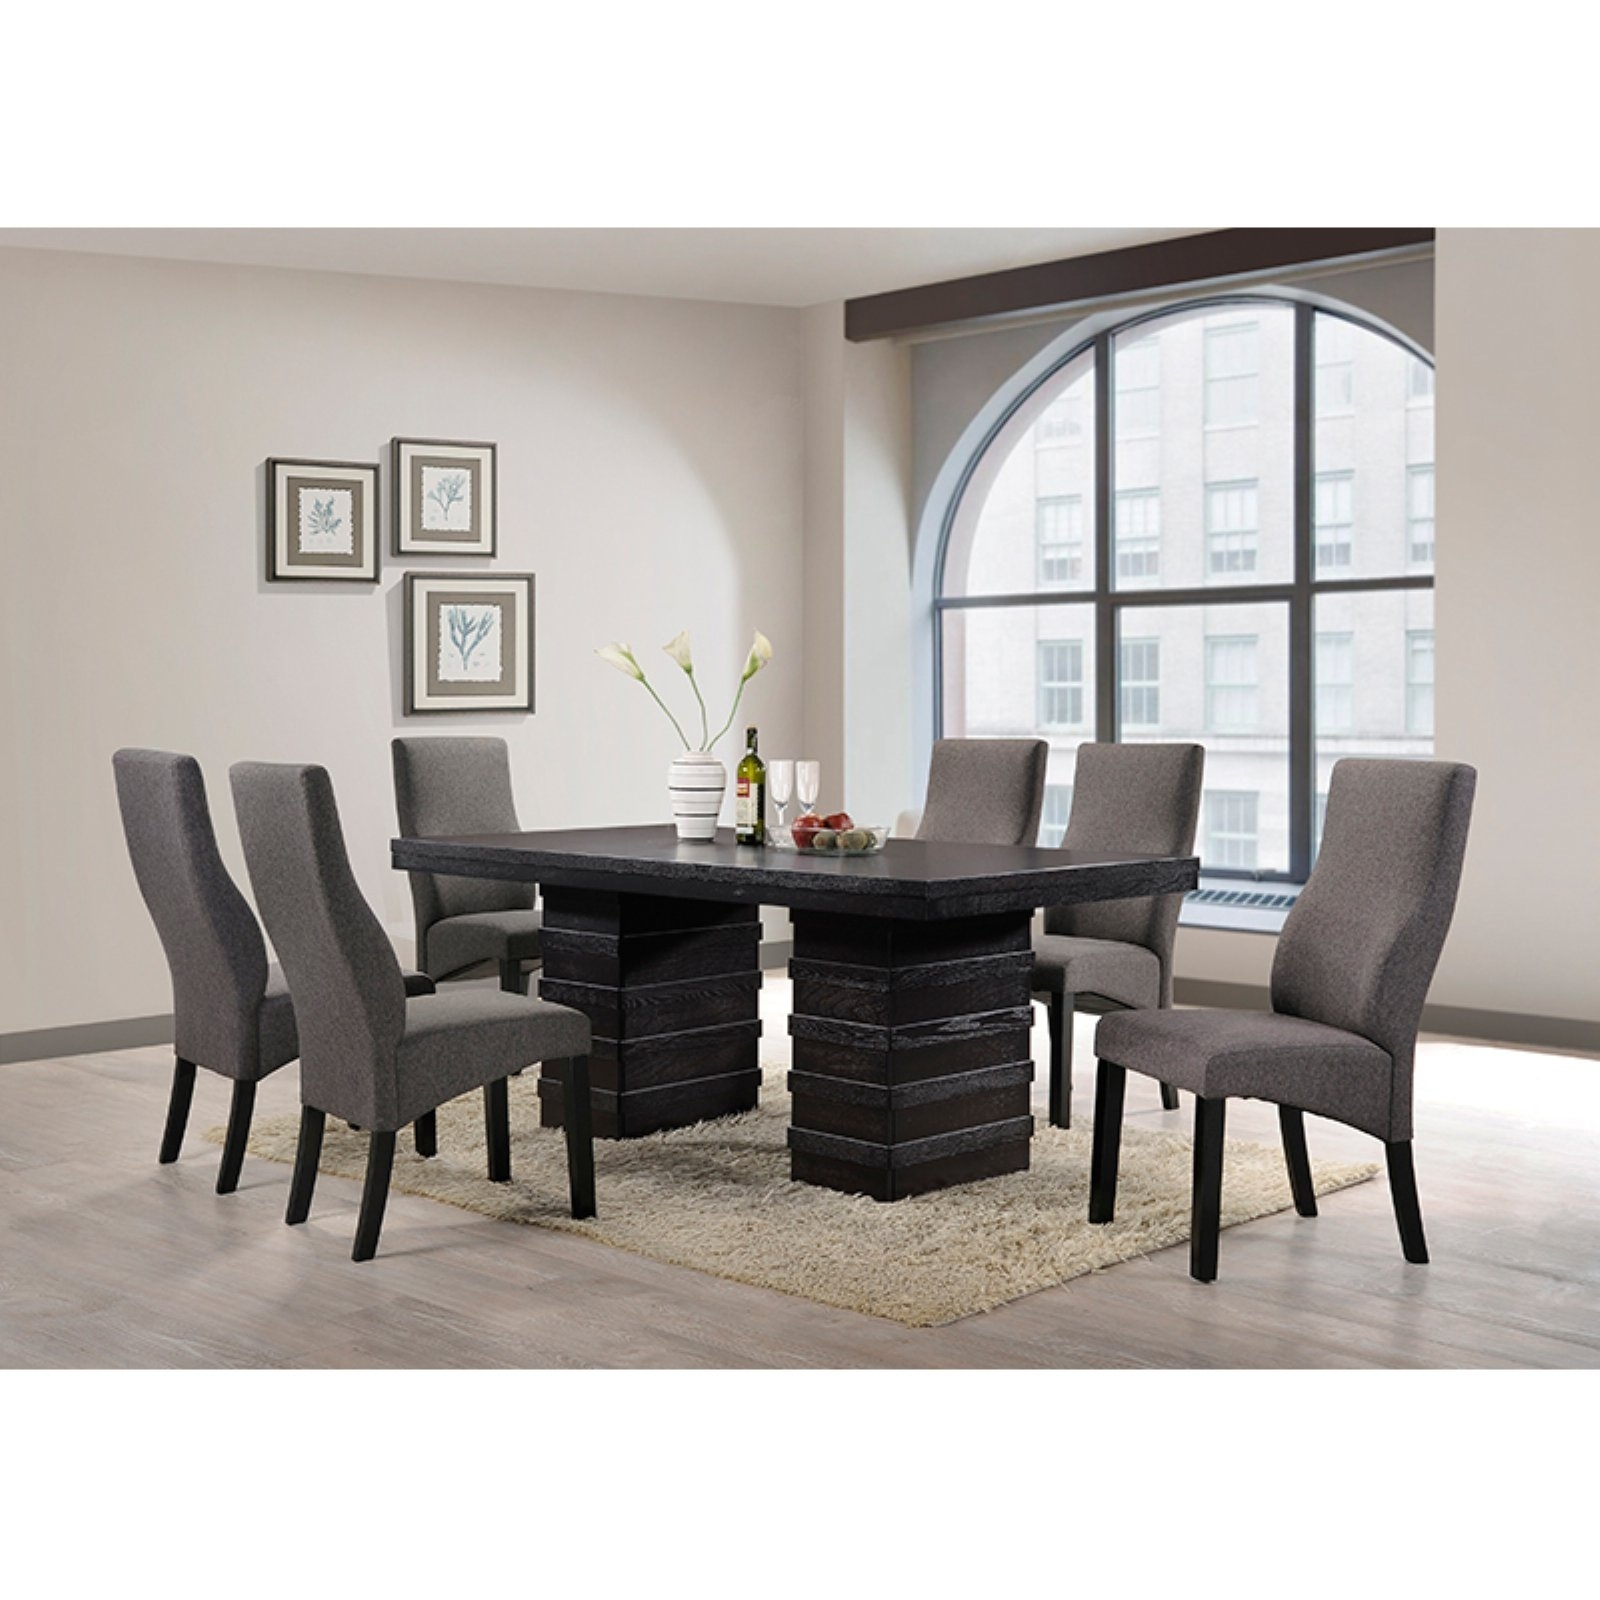 K & B Furniture Norwood Dining Table – Walmart Within Newest Norwood 6 Piece Rectangle Extension Dining Sets (Image 6 of 20)